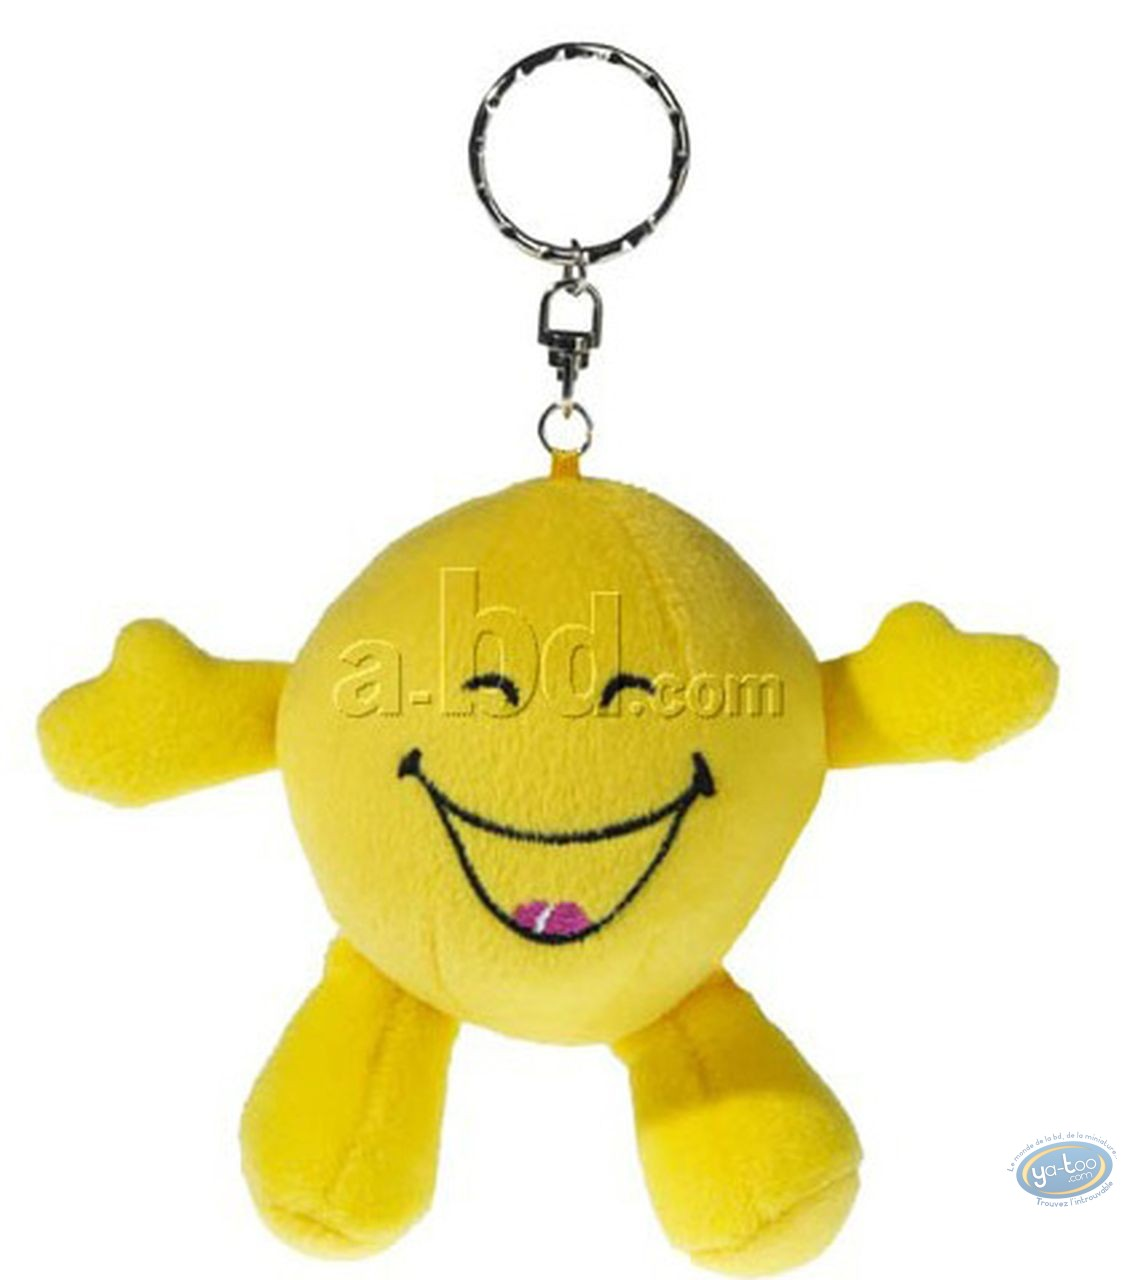 Porte-clé, Smiley : Peluche Smiley rigole